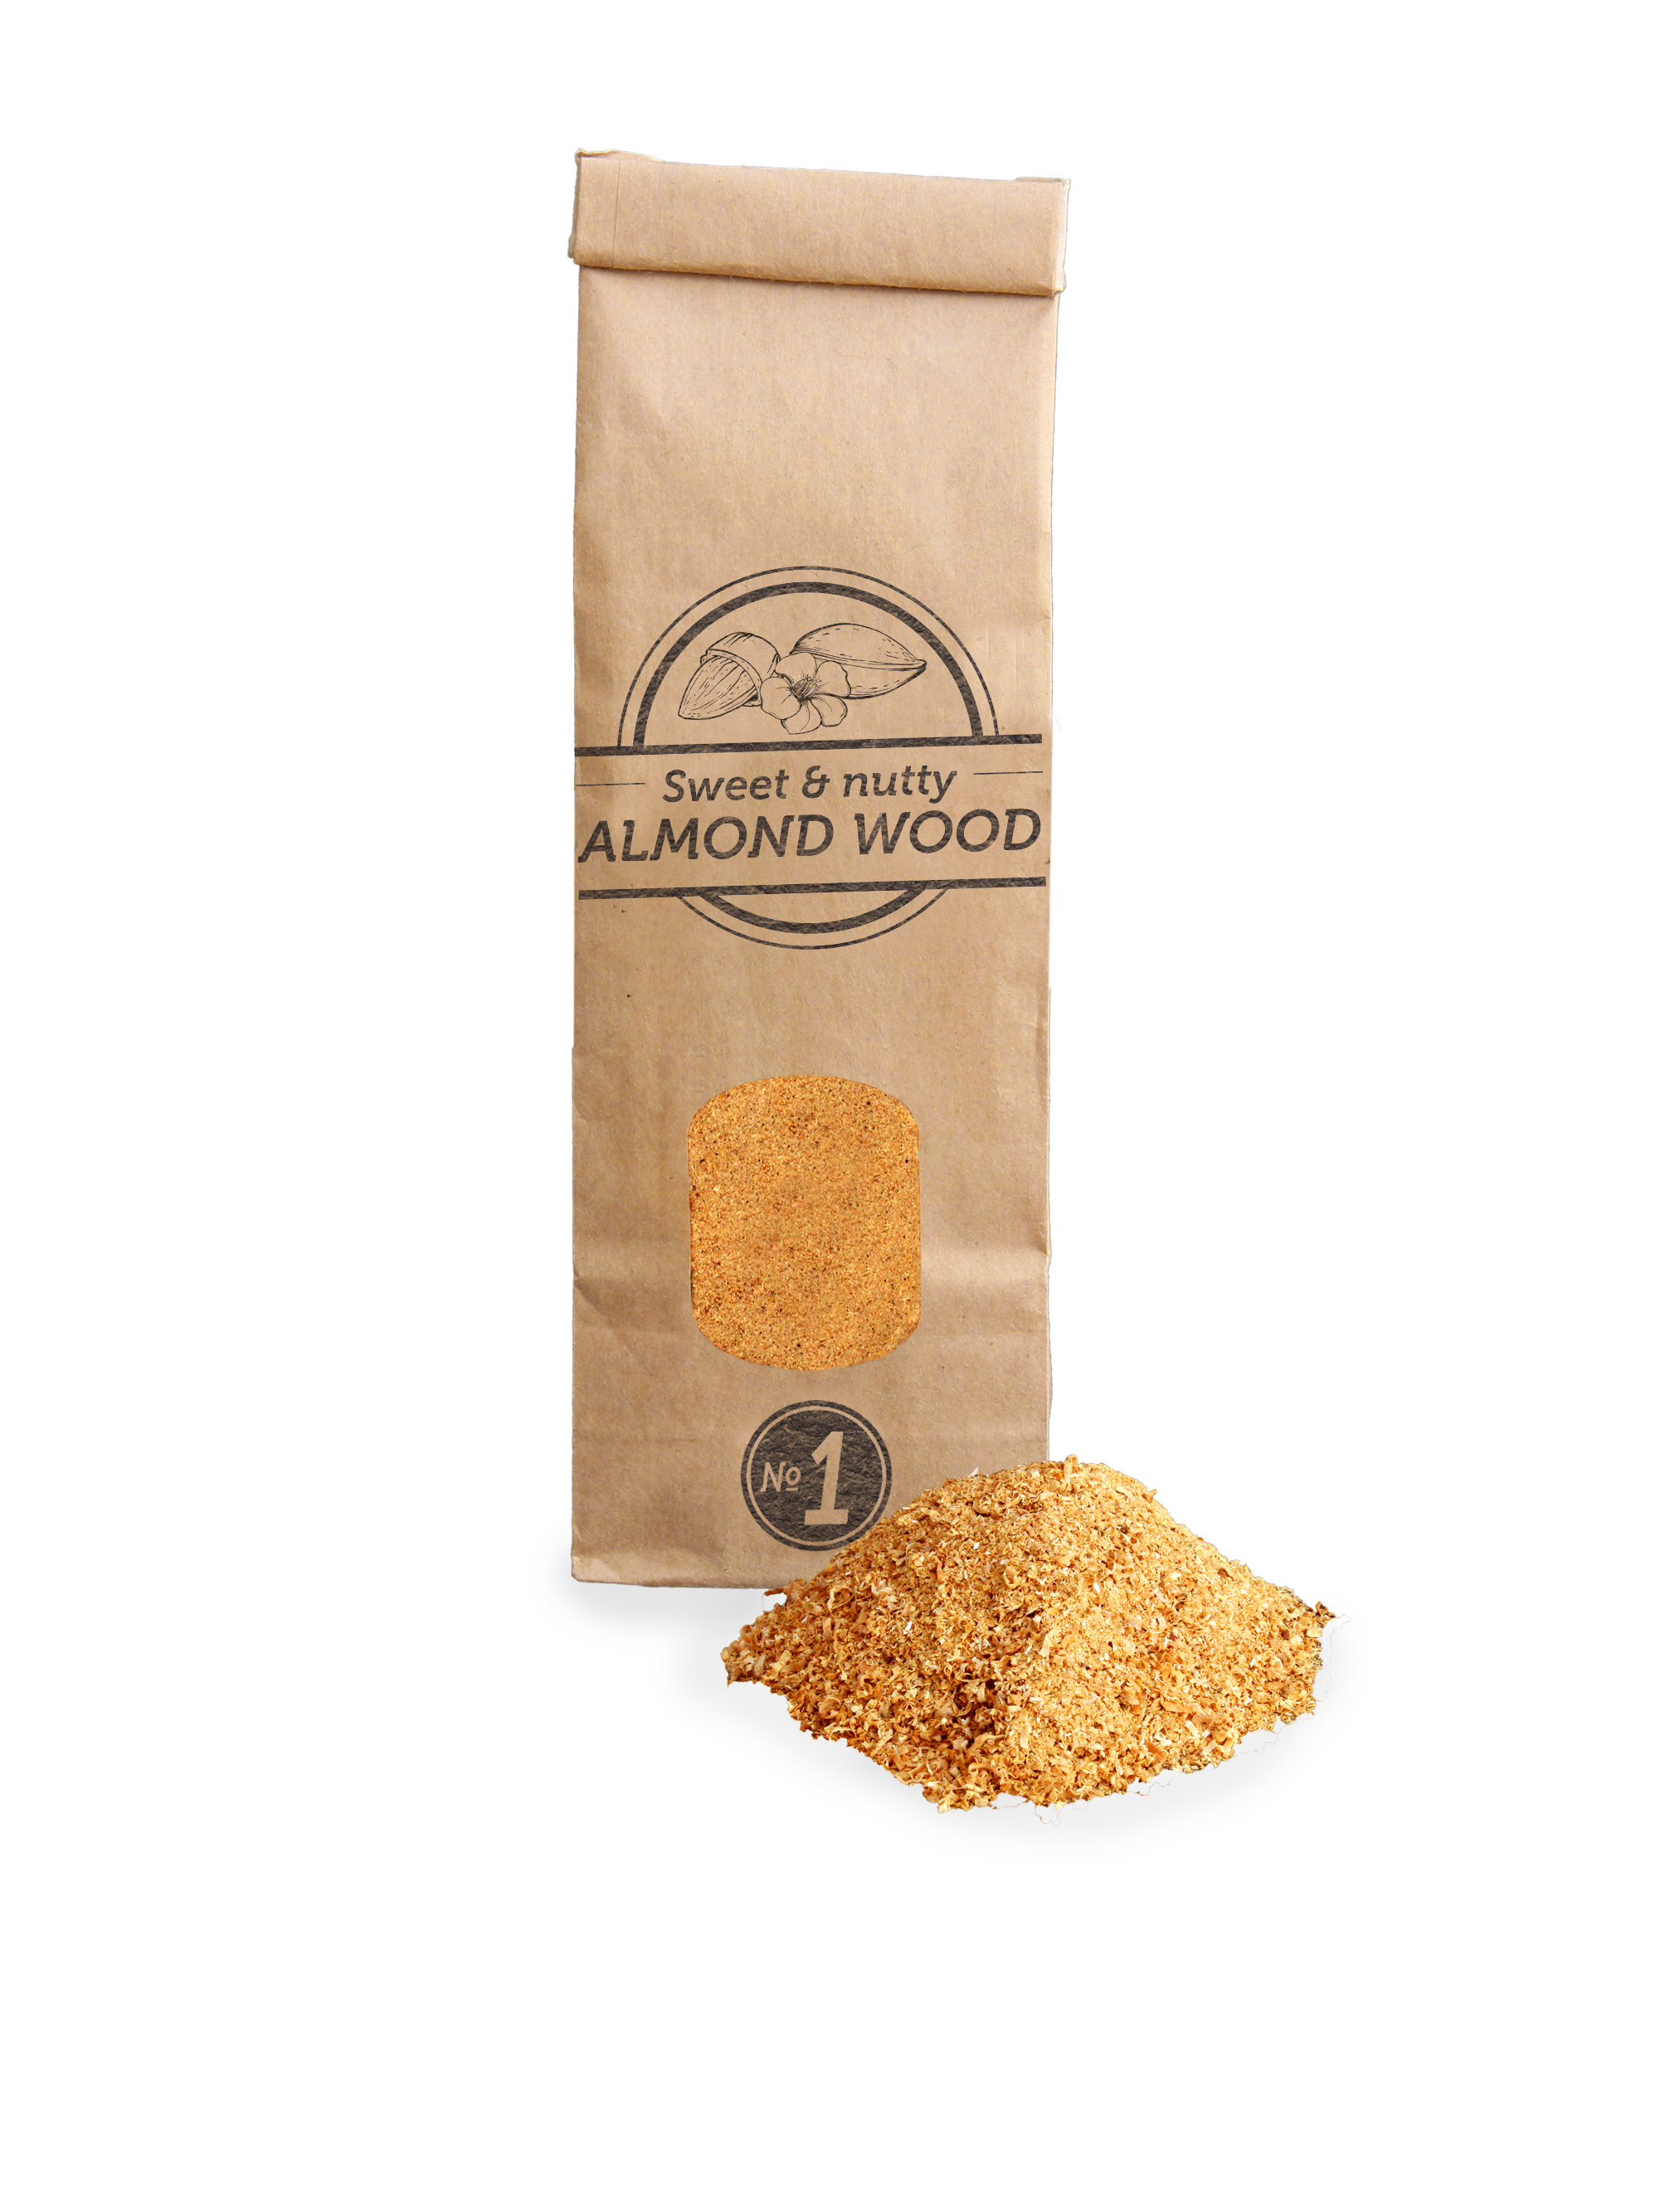 SOW Almond Wood Smoking Dust Small Pack Nº1